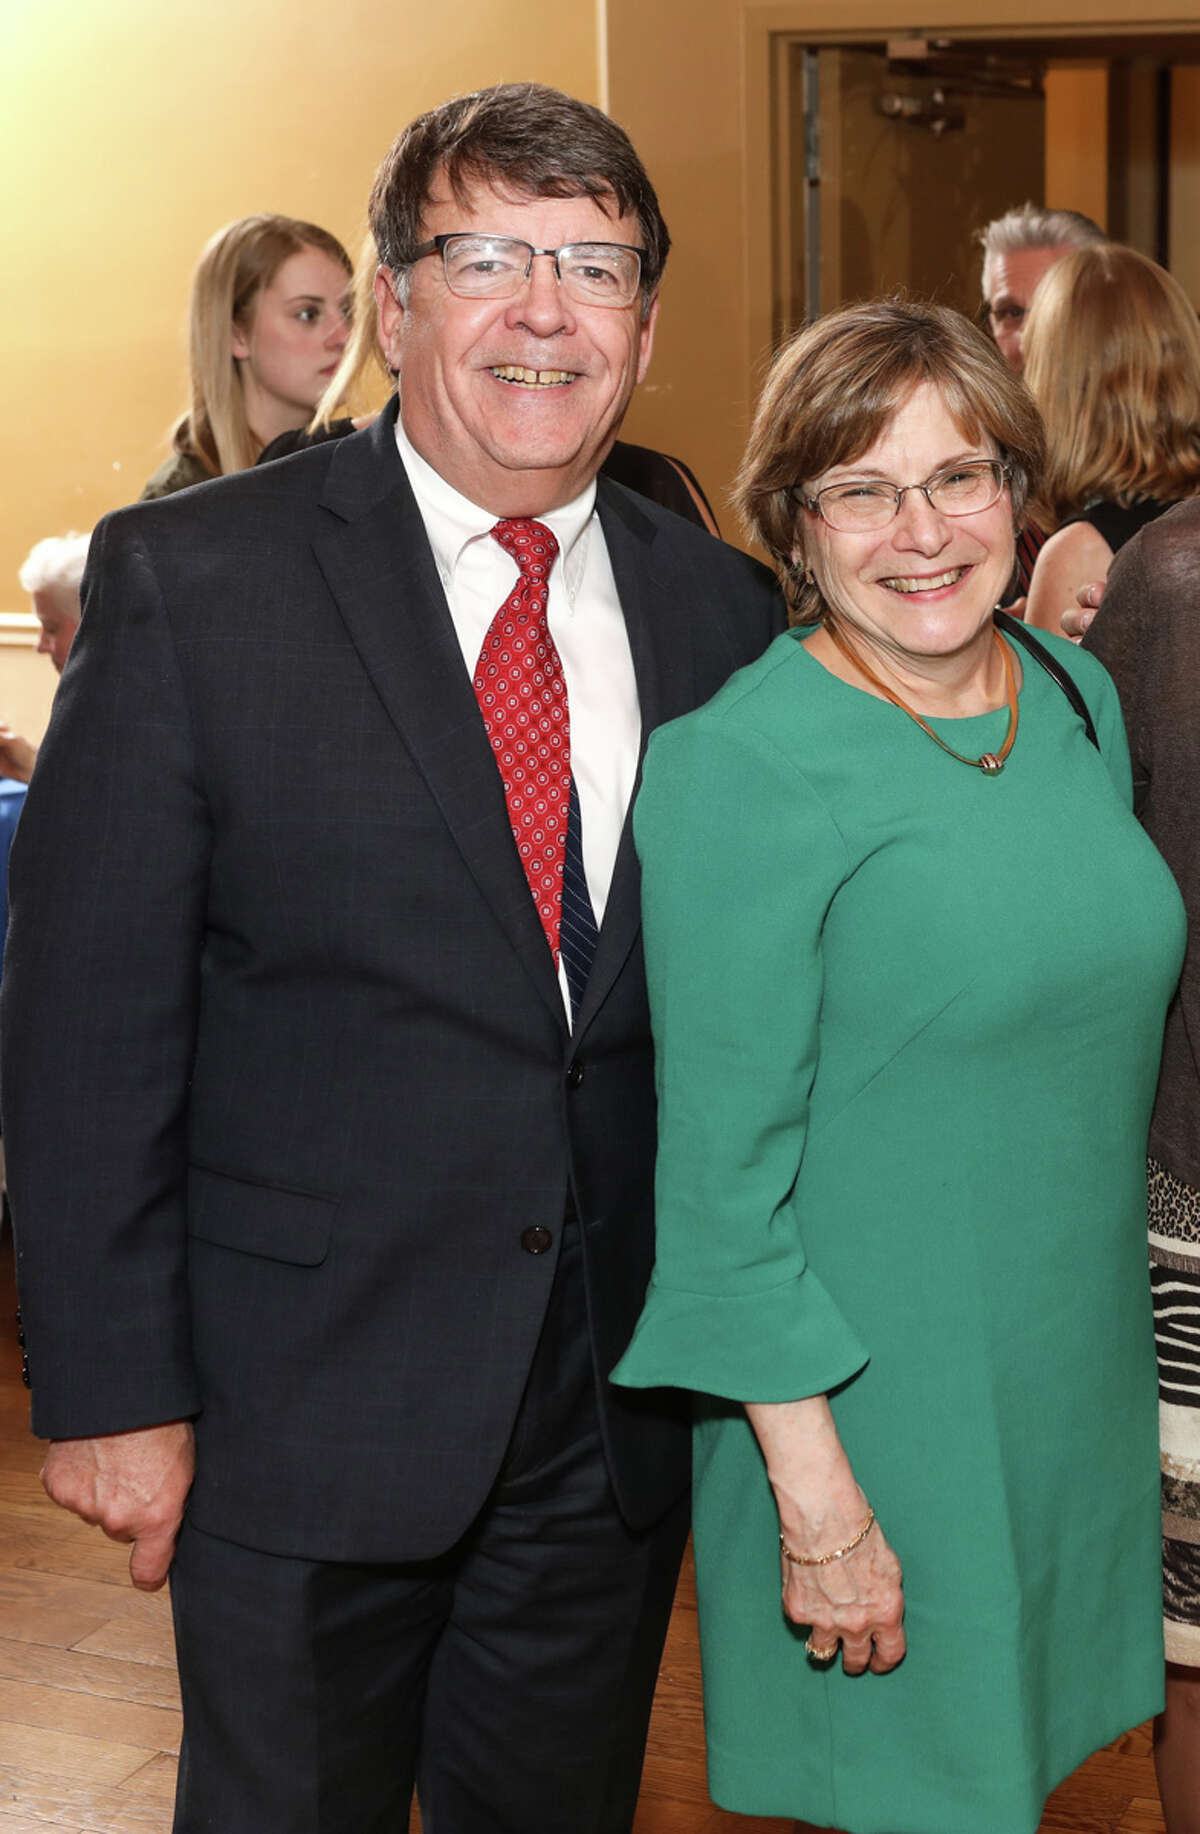 Were you Seen at the annual Food for Thought & All That Jazz event supporting the SUNY Schenectady Foundation on April 2, 2019, at the SUNY Schenectady campus in Schenectady, NY?